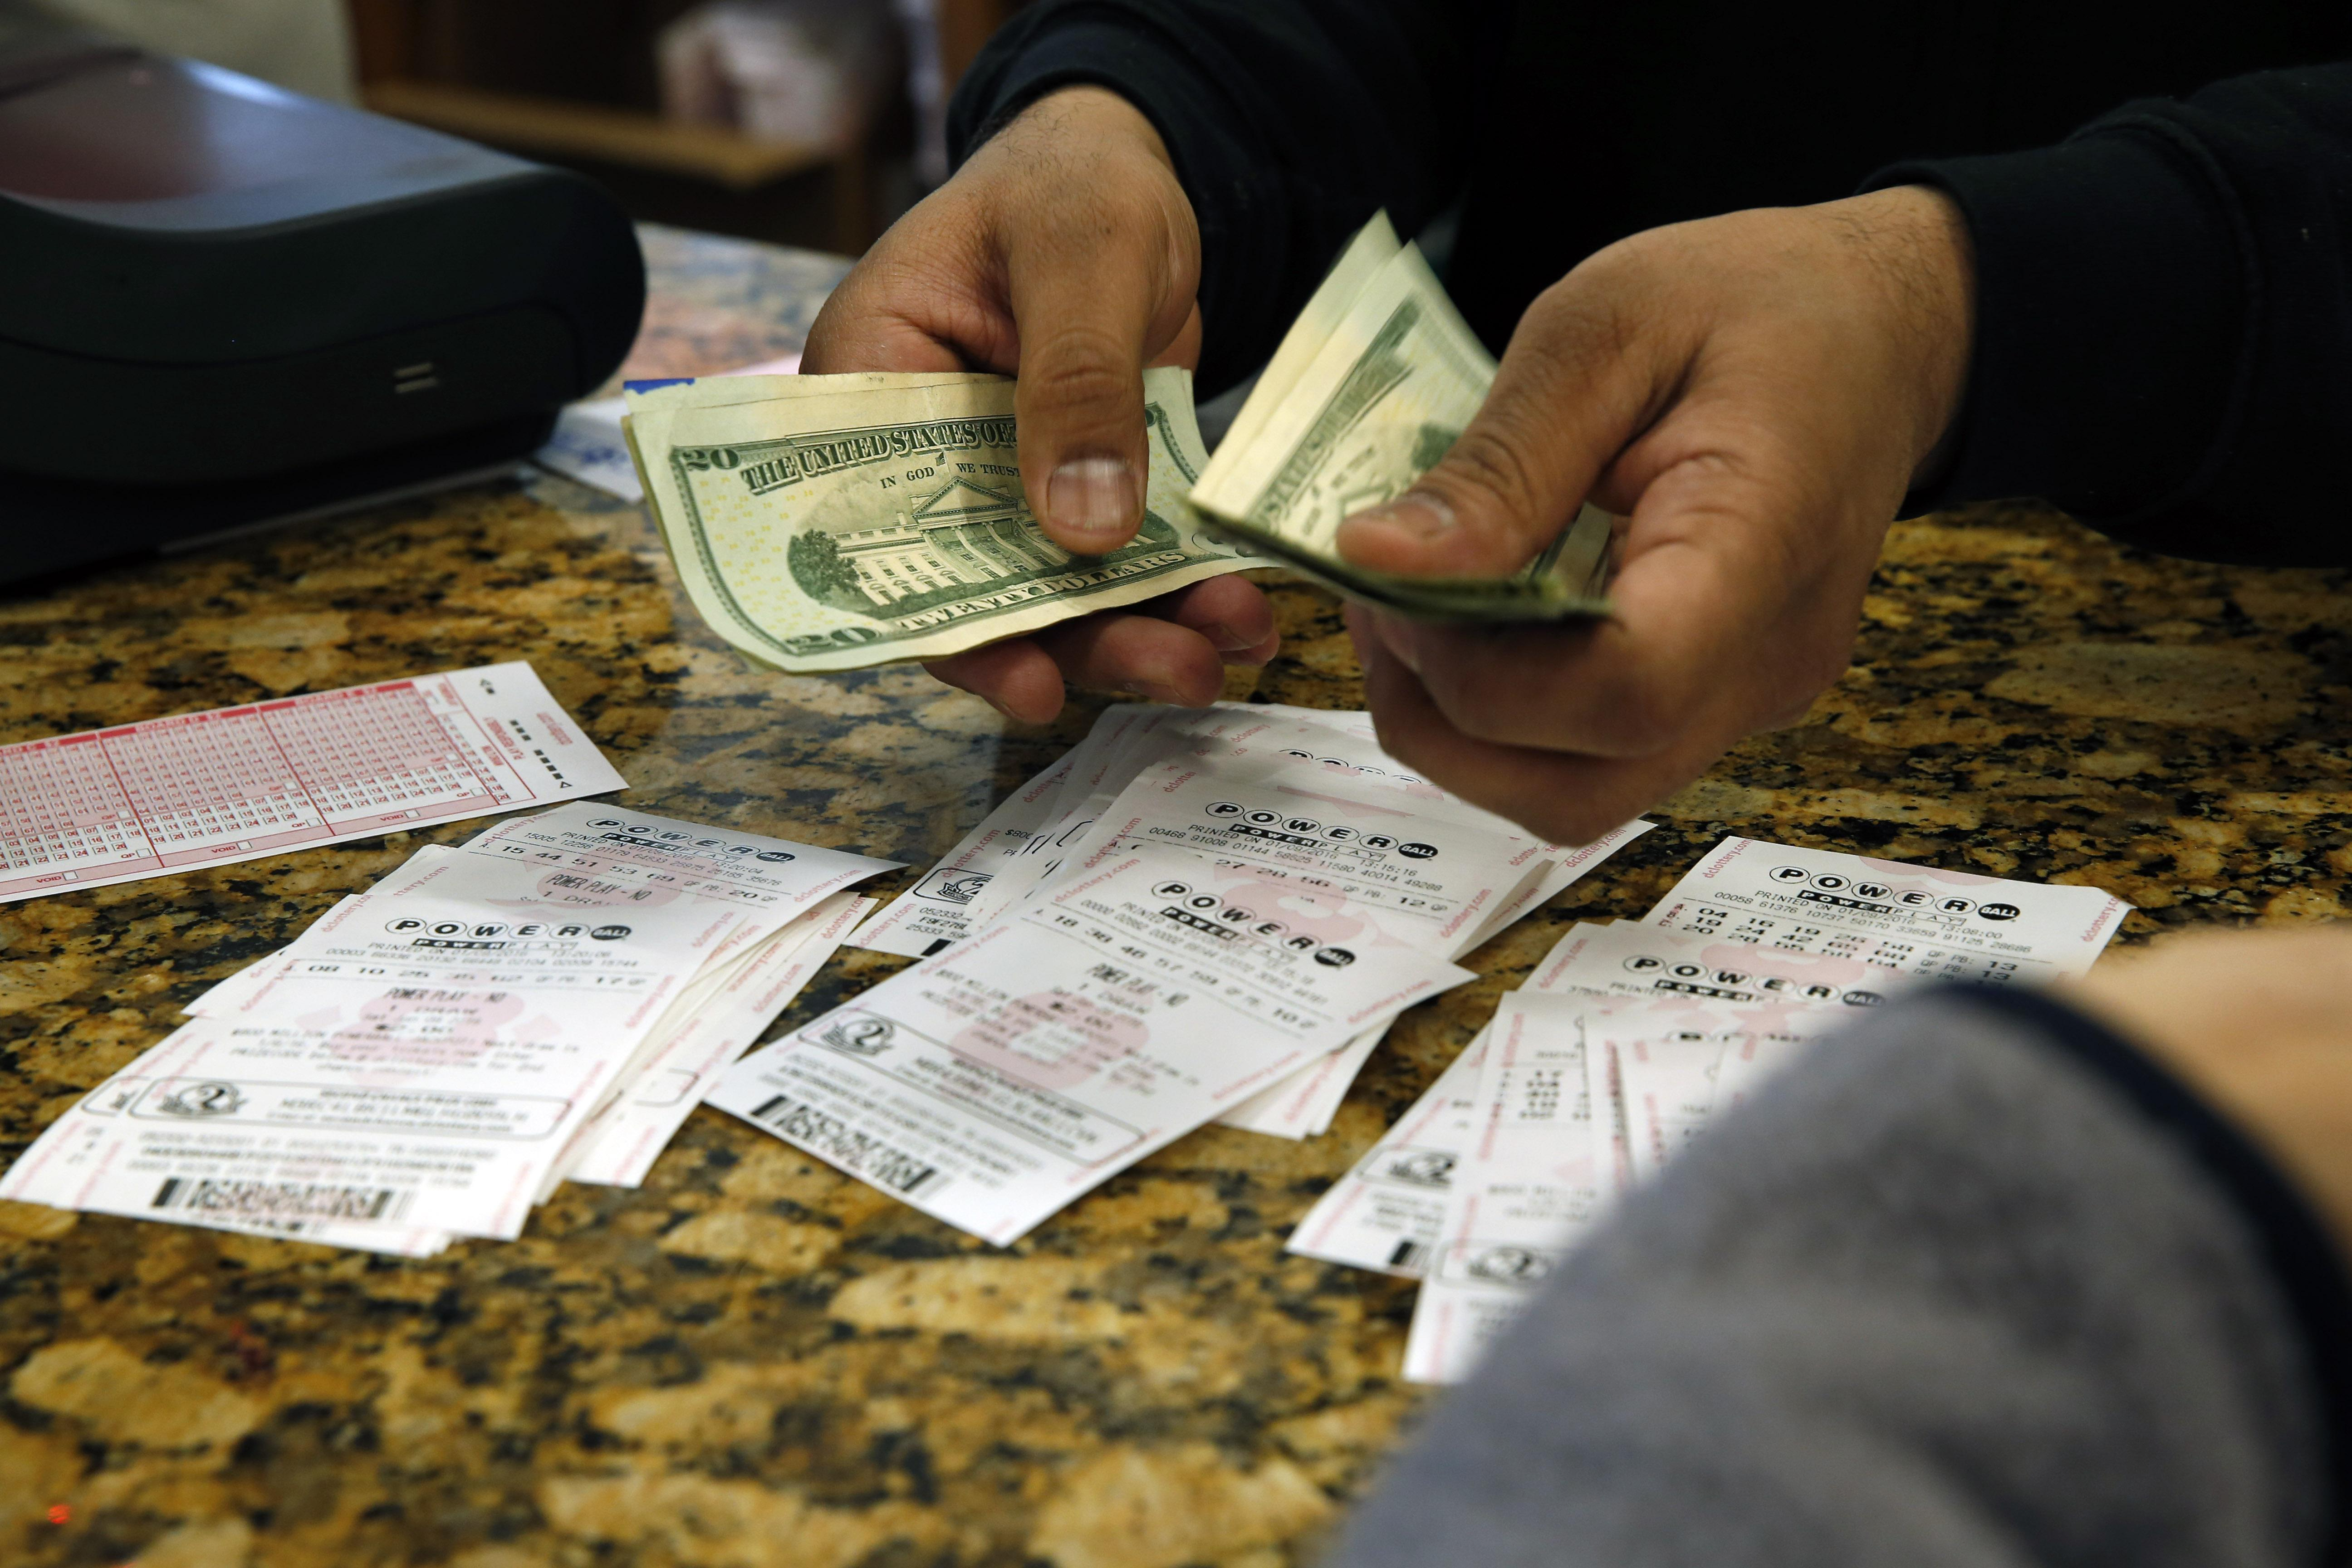 Unidentified person bought $1 million lottery ticket in